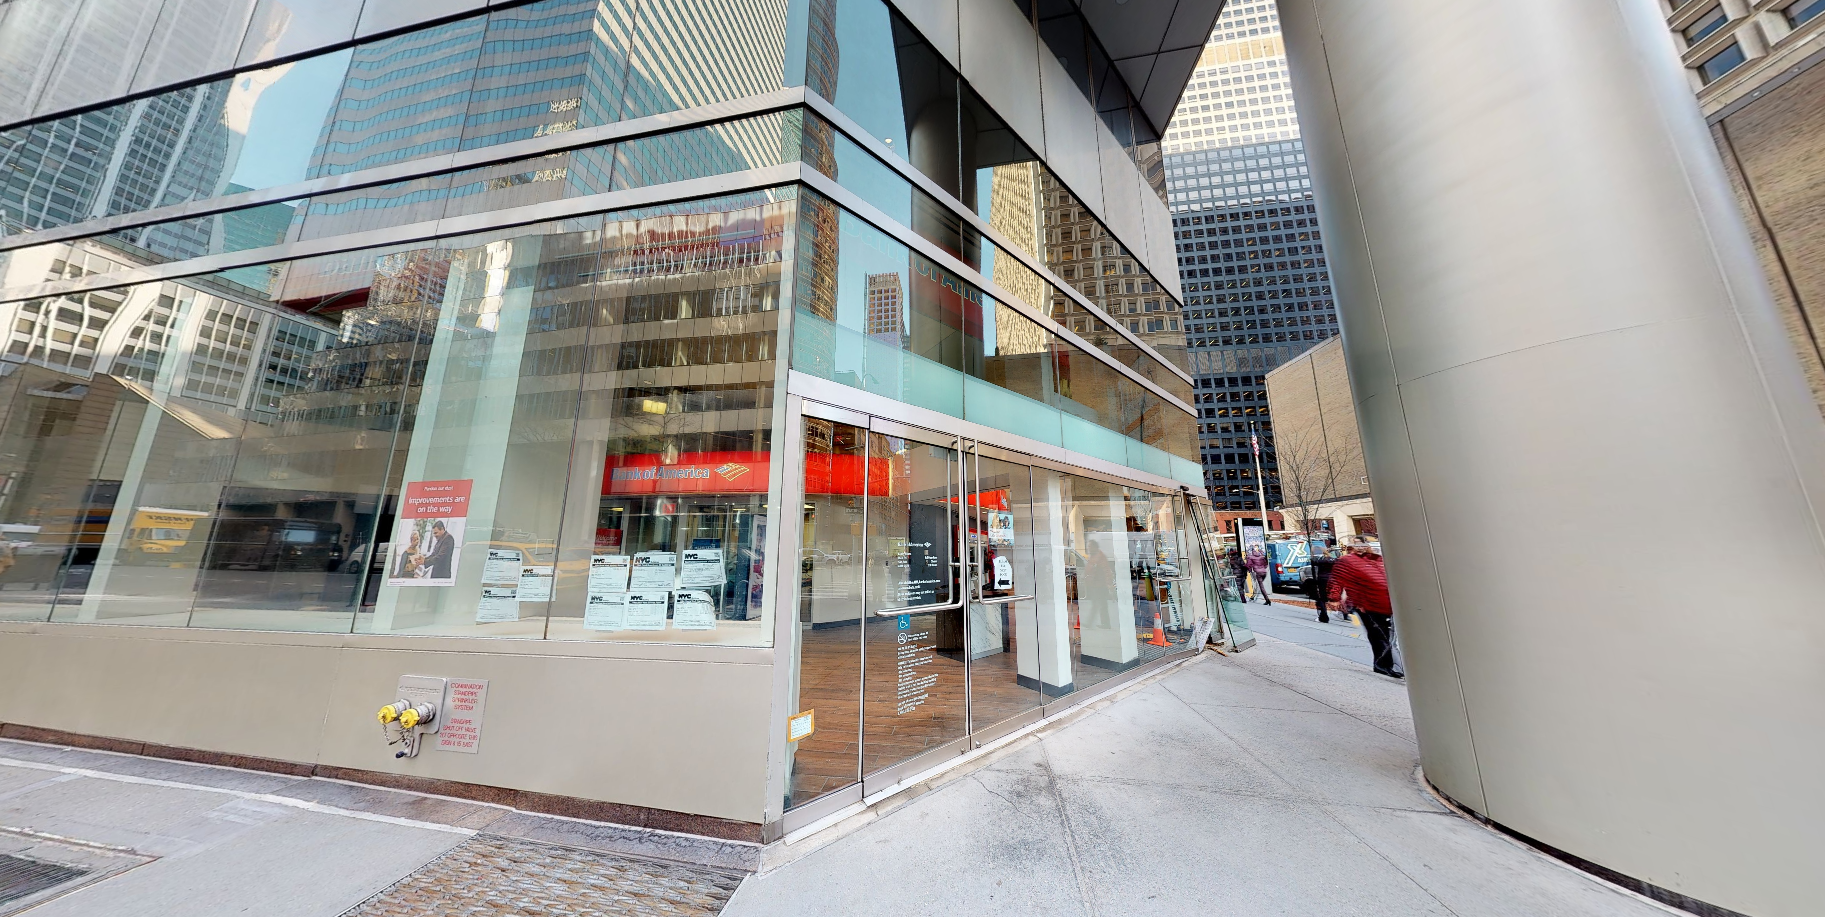 Bank of America financial center with walk-up ATM | 900 3rd Ave, New York, NY 10022